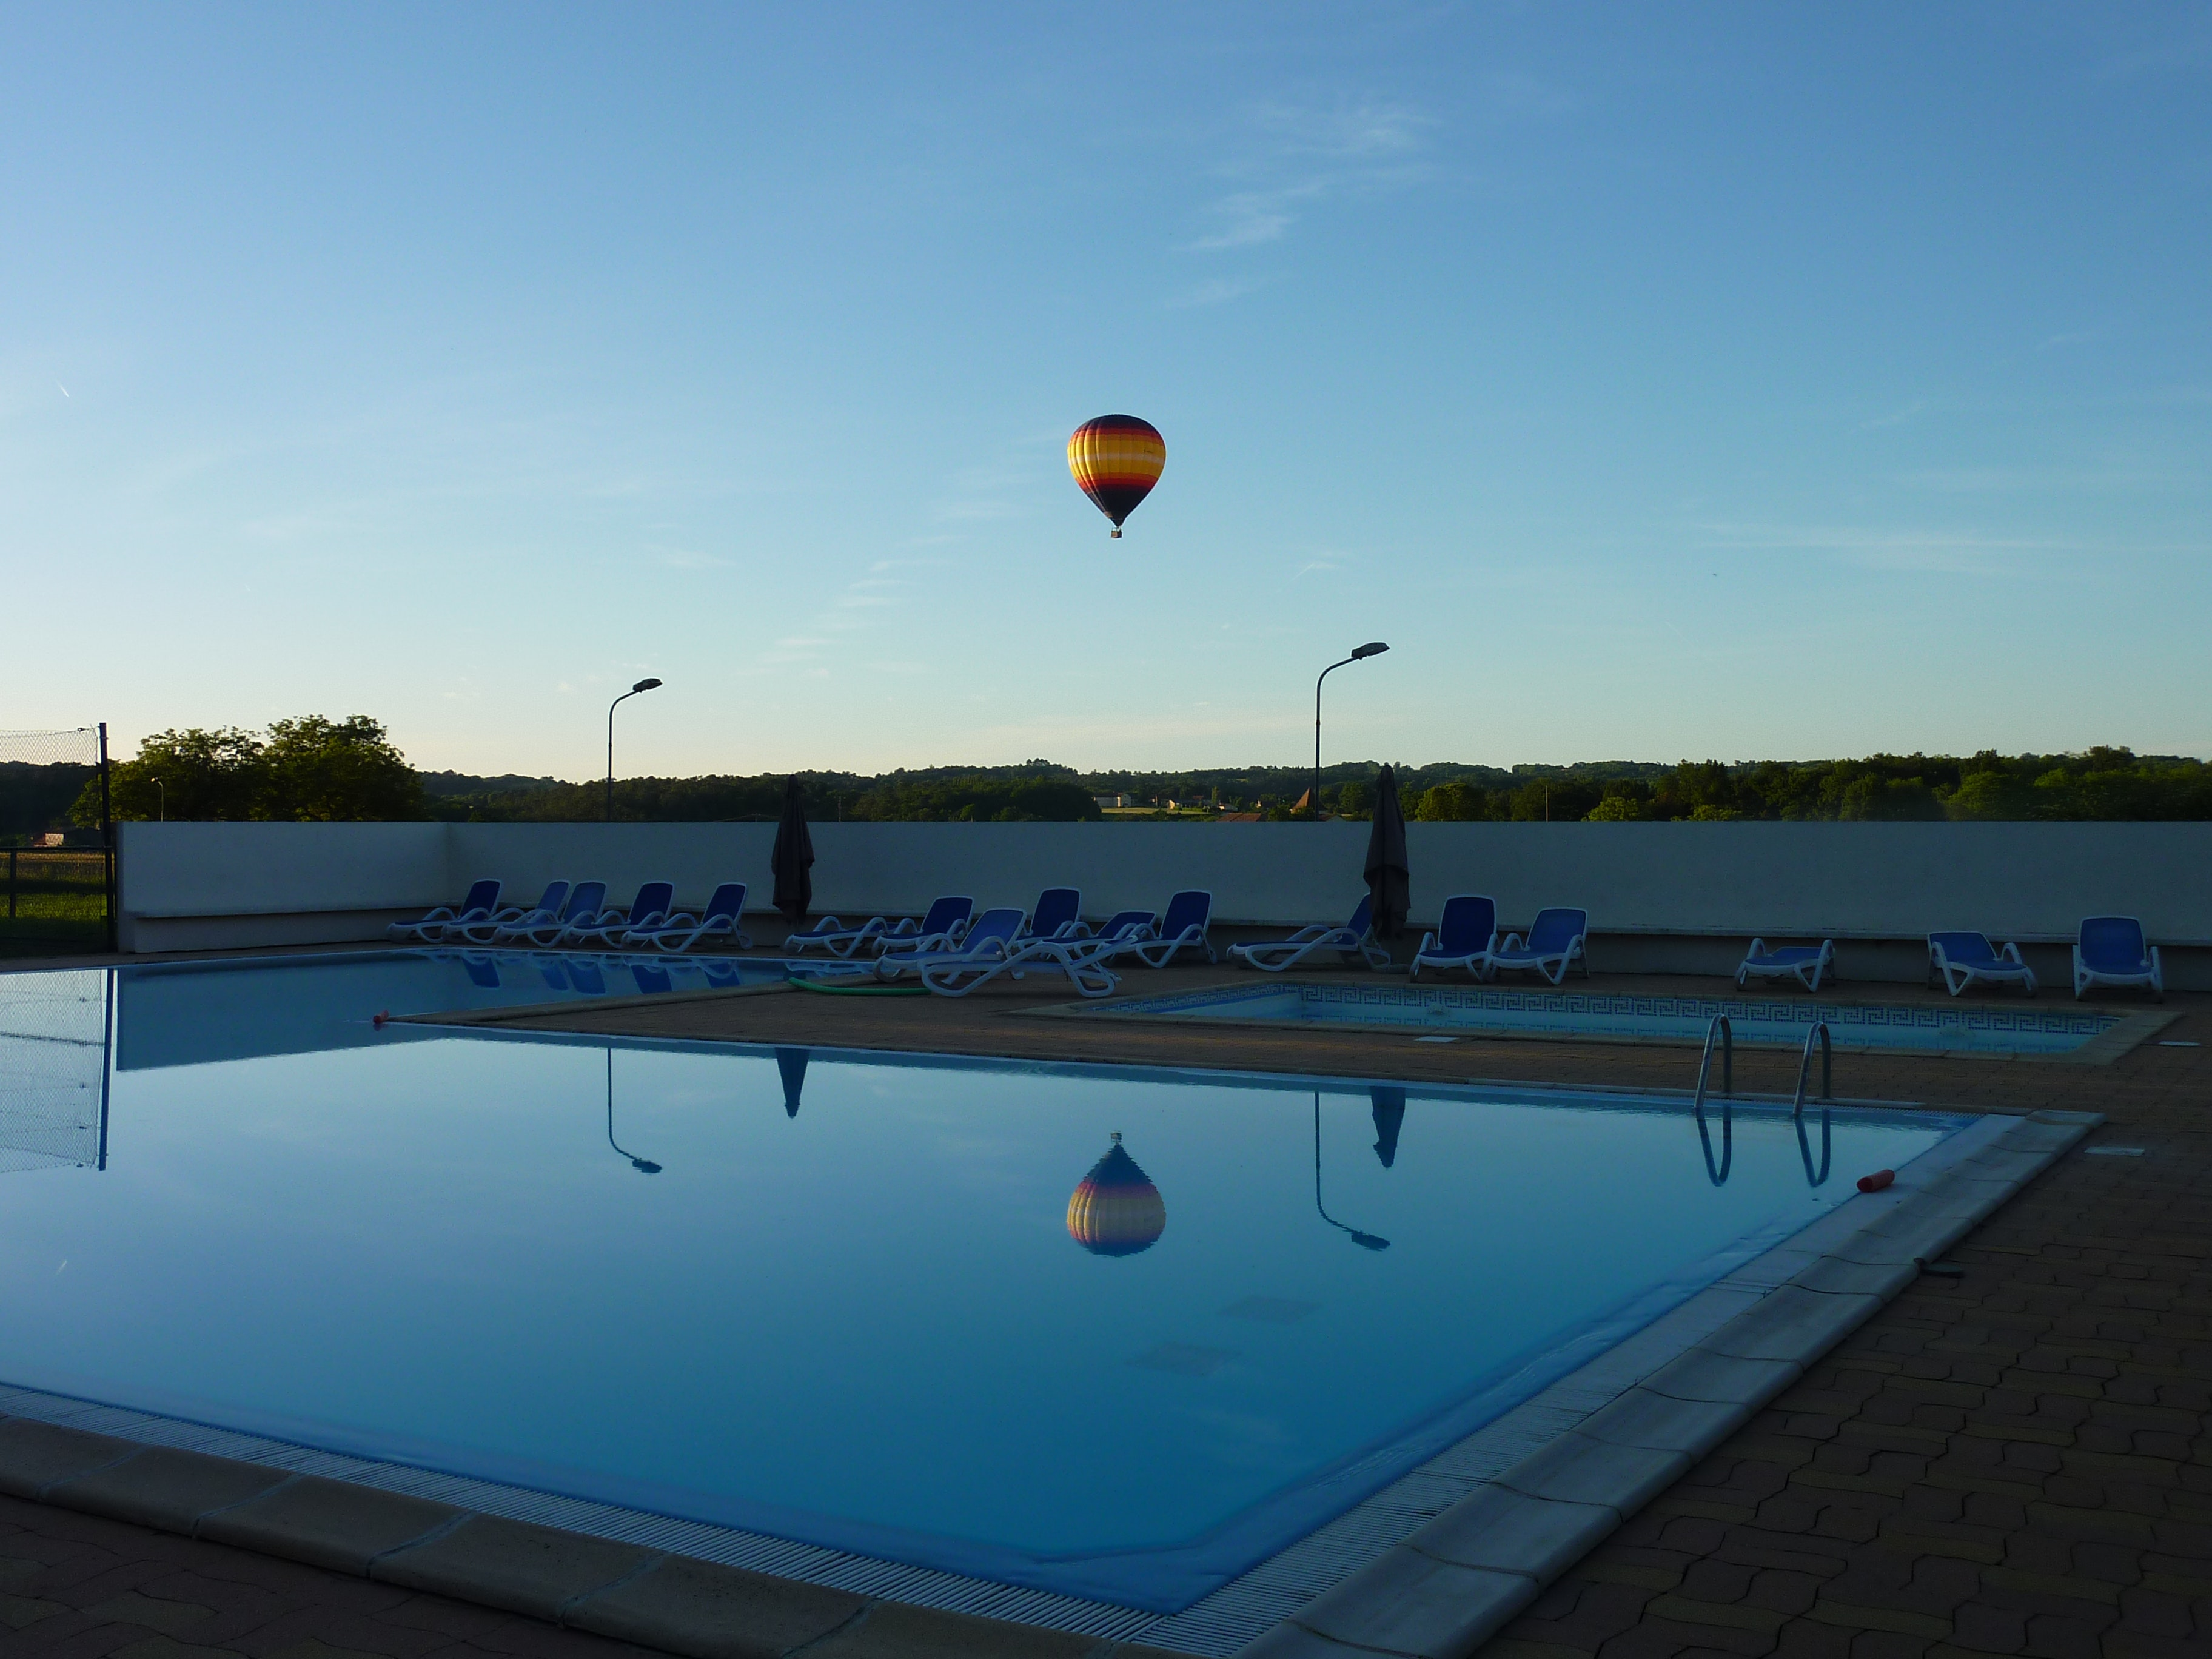 Camping de Maillac zwembad avond